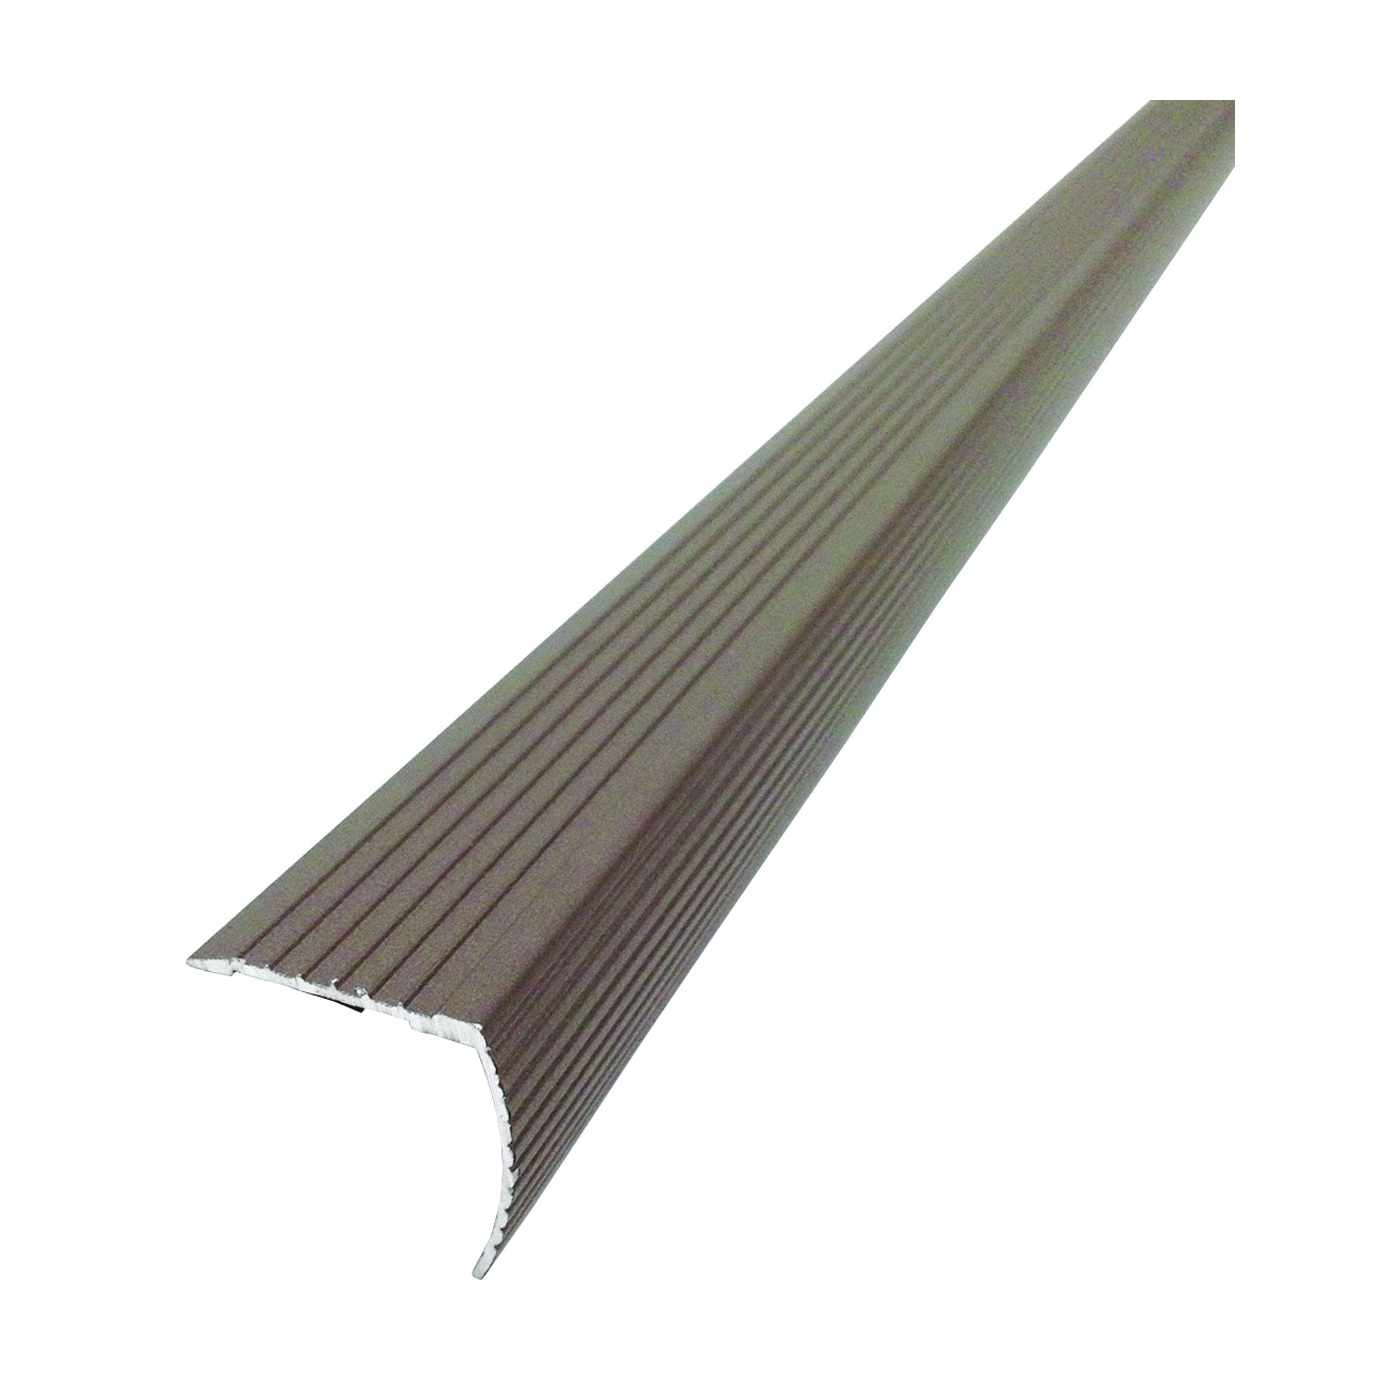 Picture of M-D 43311 Fluted Stair Edge, 36 in L, 1.22 in W, Metal, Spice